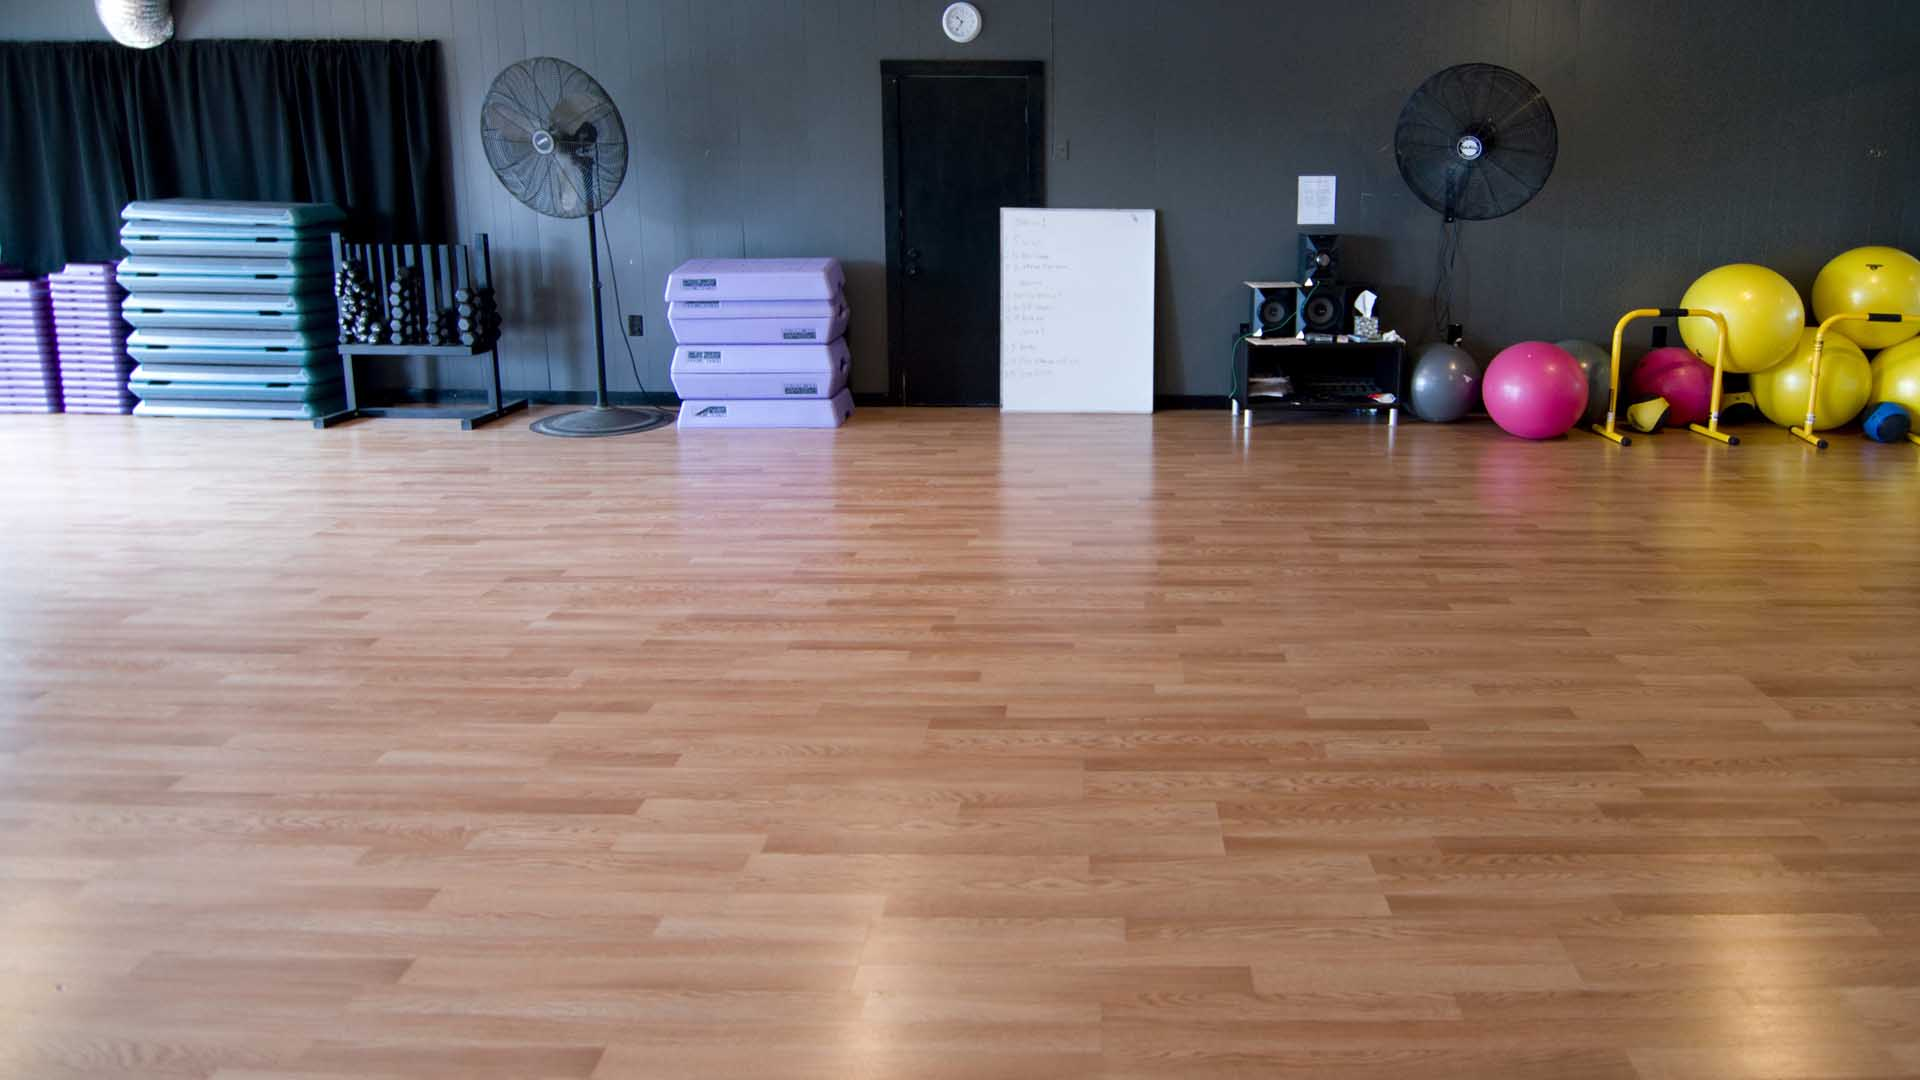 Aerobics steps, fitness balls and a dumbbell rack stand against the wall at the back of the Group Fitness room at Revival Fitness in Gonzales, TX.